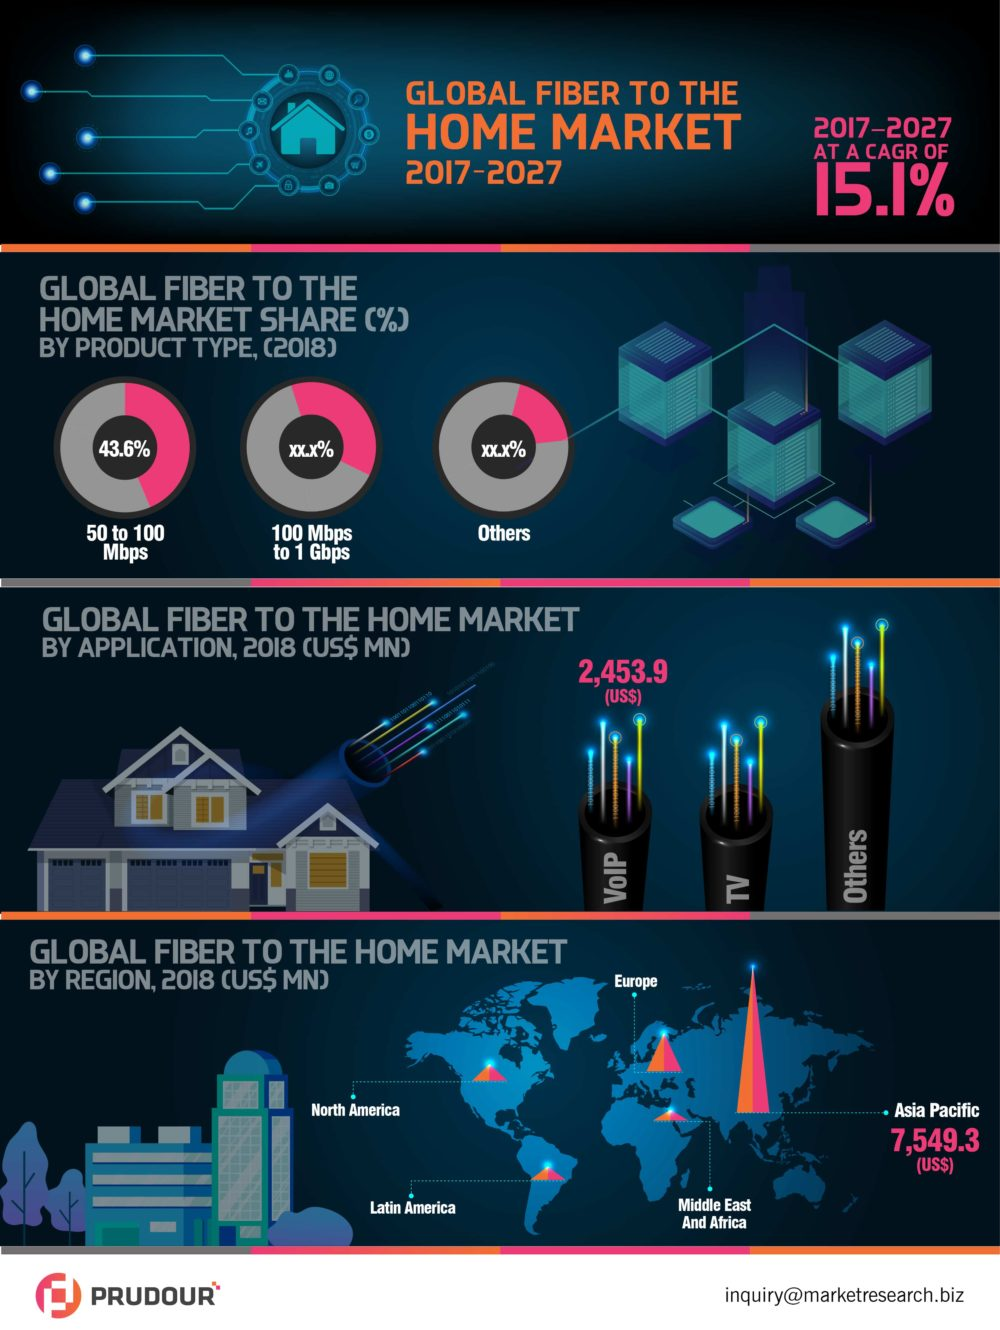 To Register CAGR Of 15.1%: Fiber to The Home Market About To Hit CAGR of 15.1% from 2017 to 2027